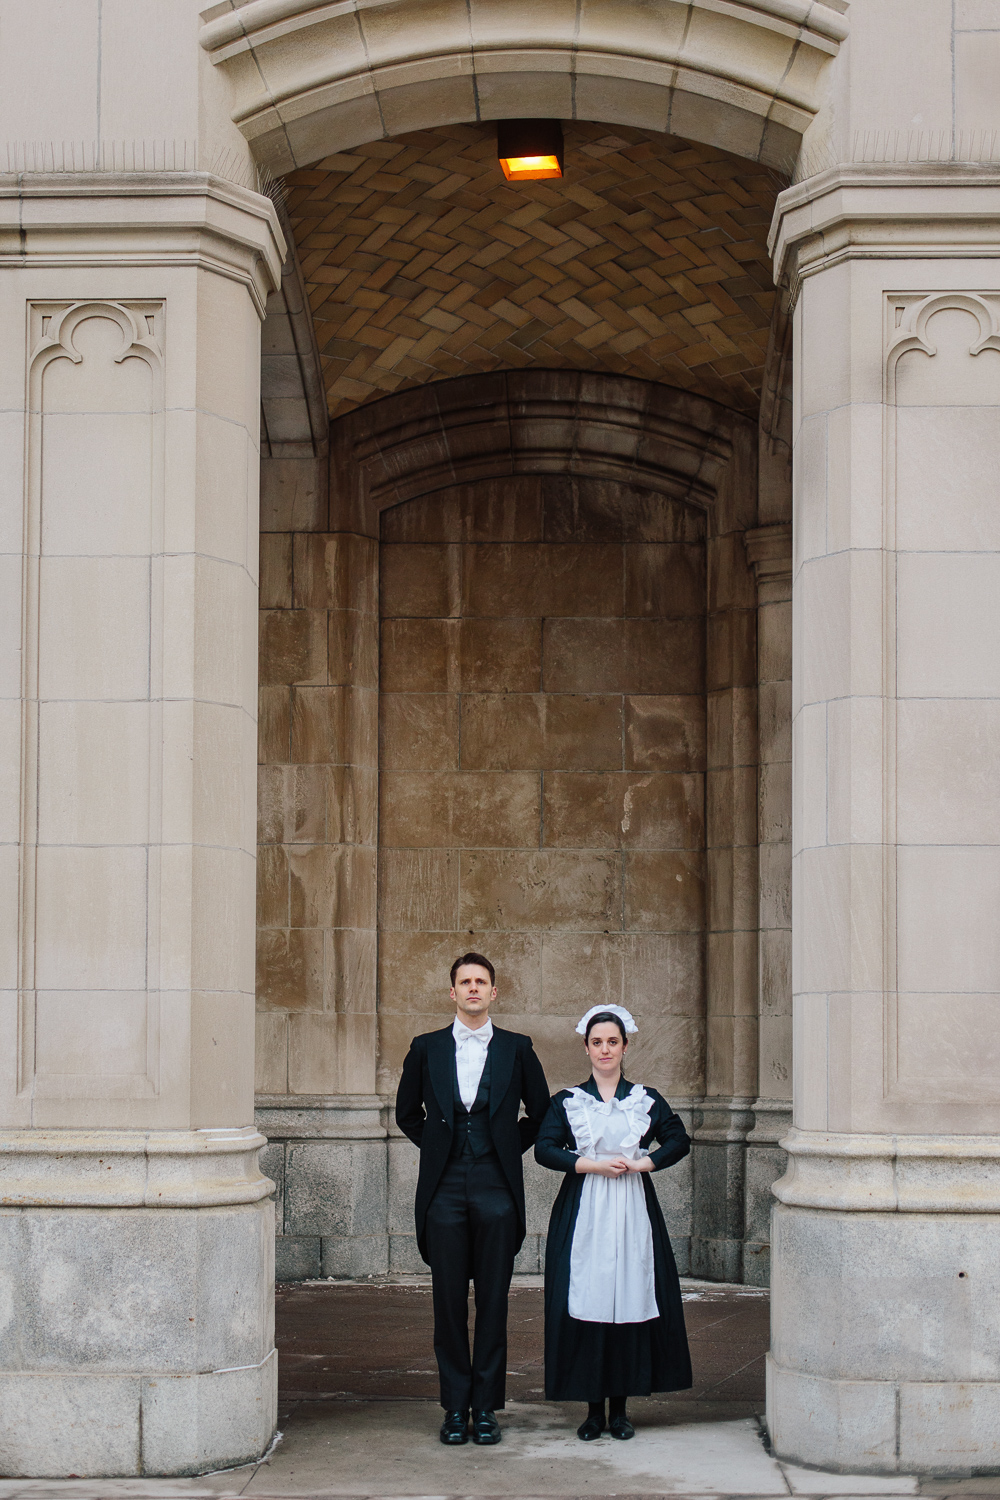 Engagement shoot of the couple posing in front of stone pillars dressed as a butler and maid